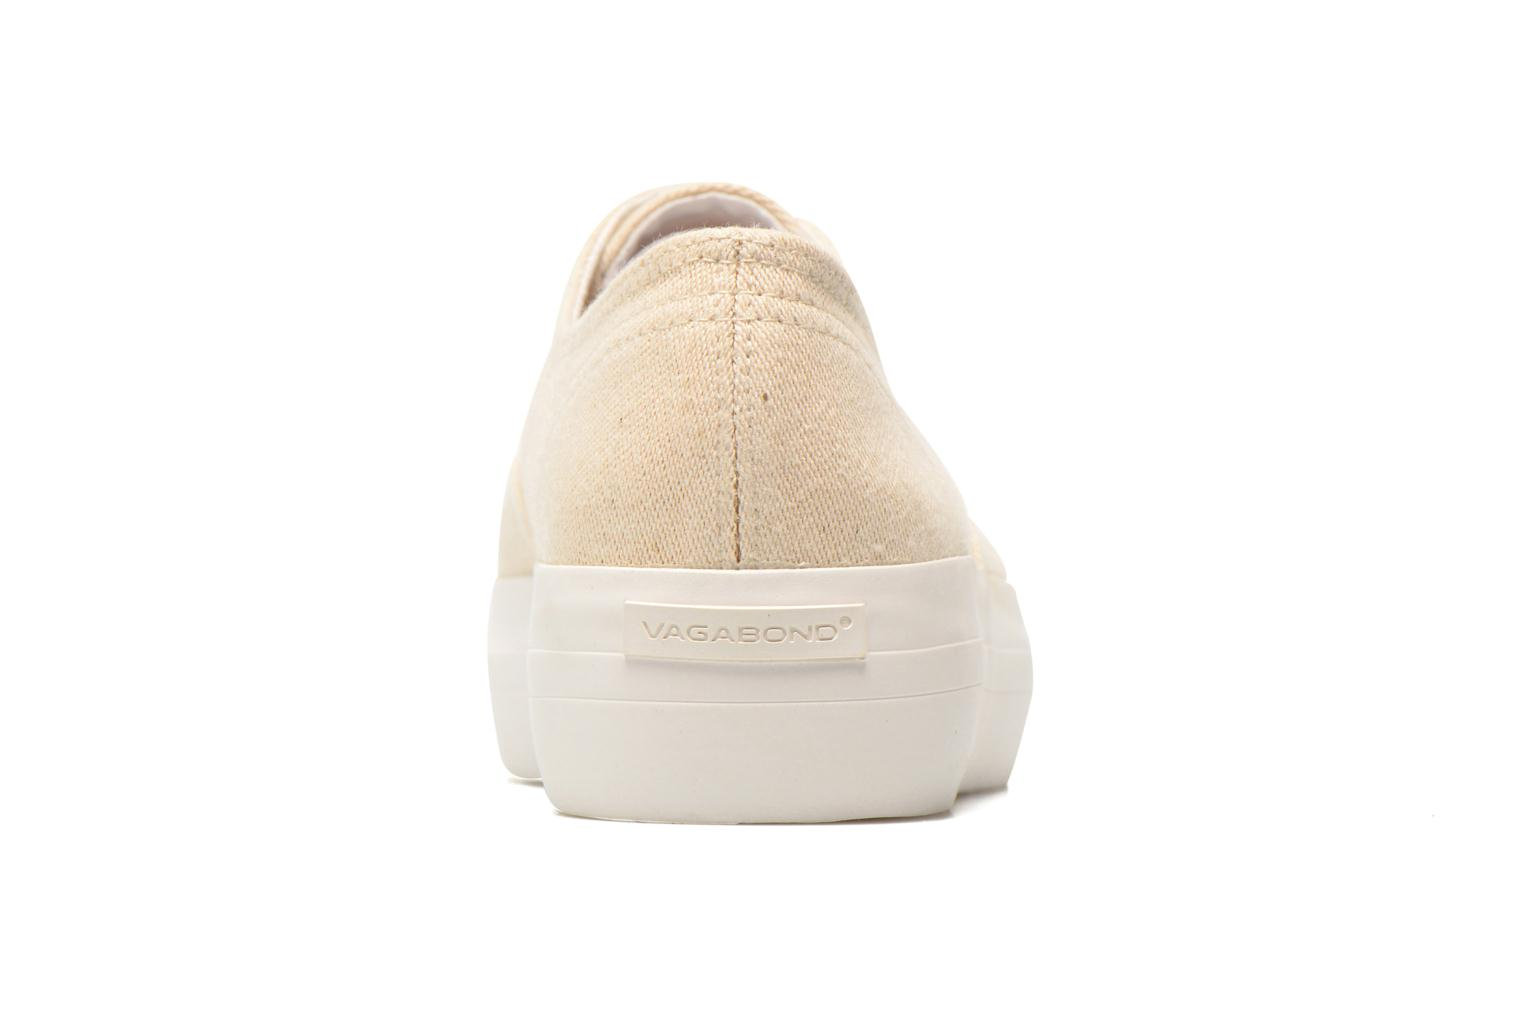 Baskets Vagabond Shoemakers Keira 4144-180 Beige vue droite